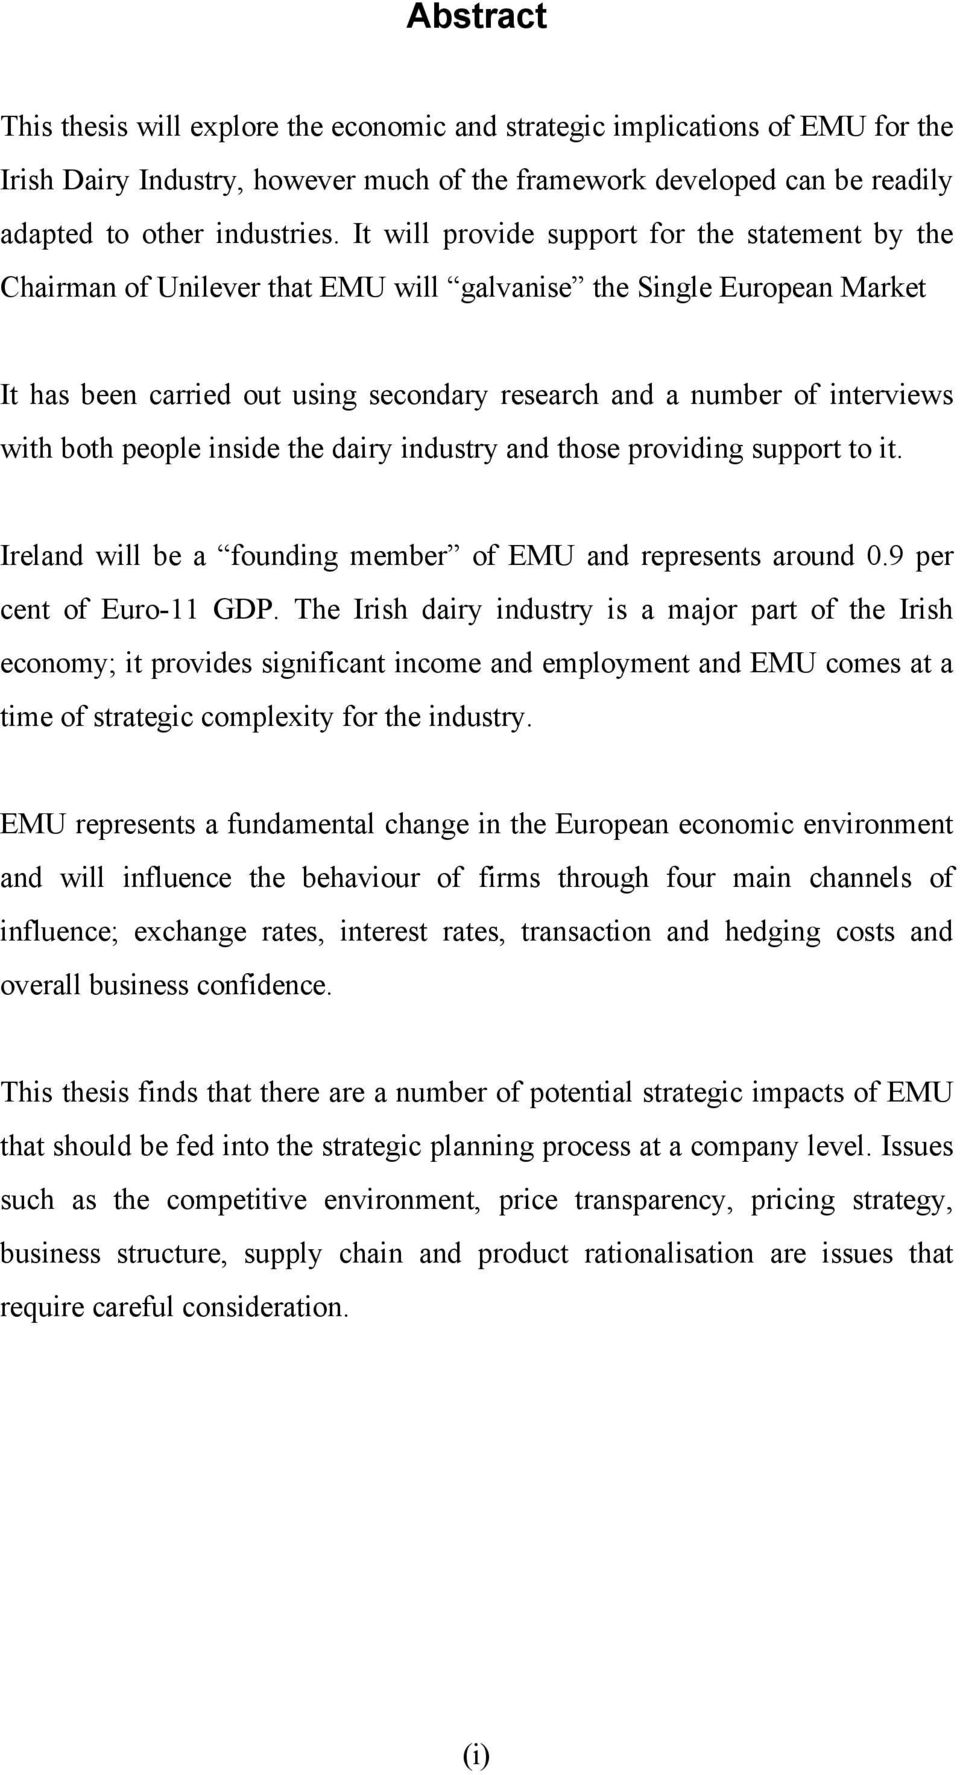 with both people inside the dairy industry and those providing support to it. Ireland will be a founding member of EMU and represents around 0.9 per cent of Euro-11 GDP.